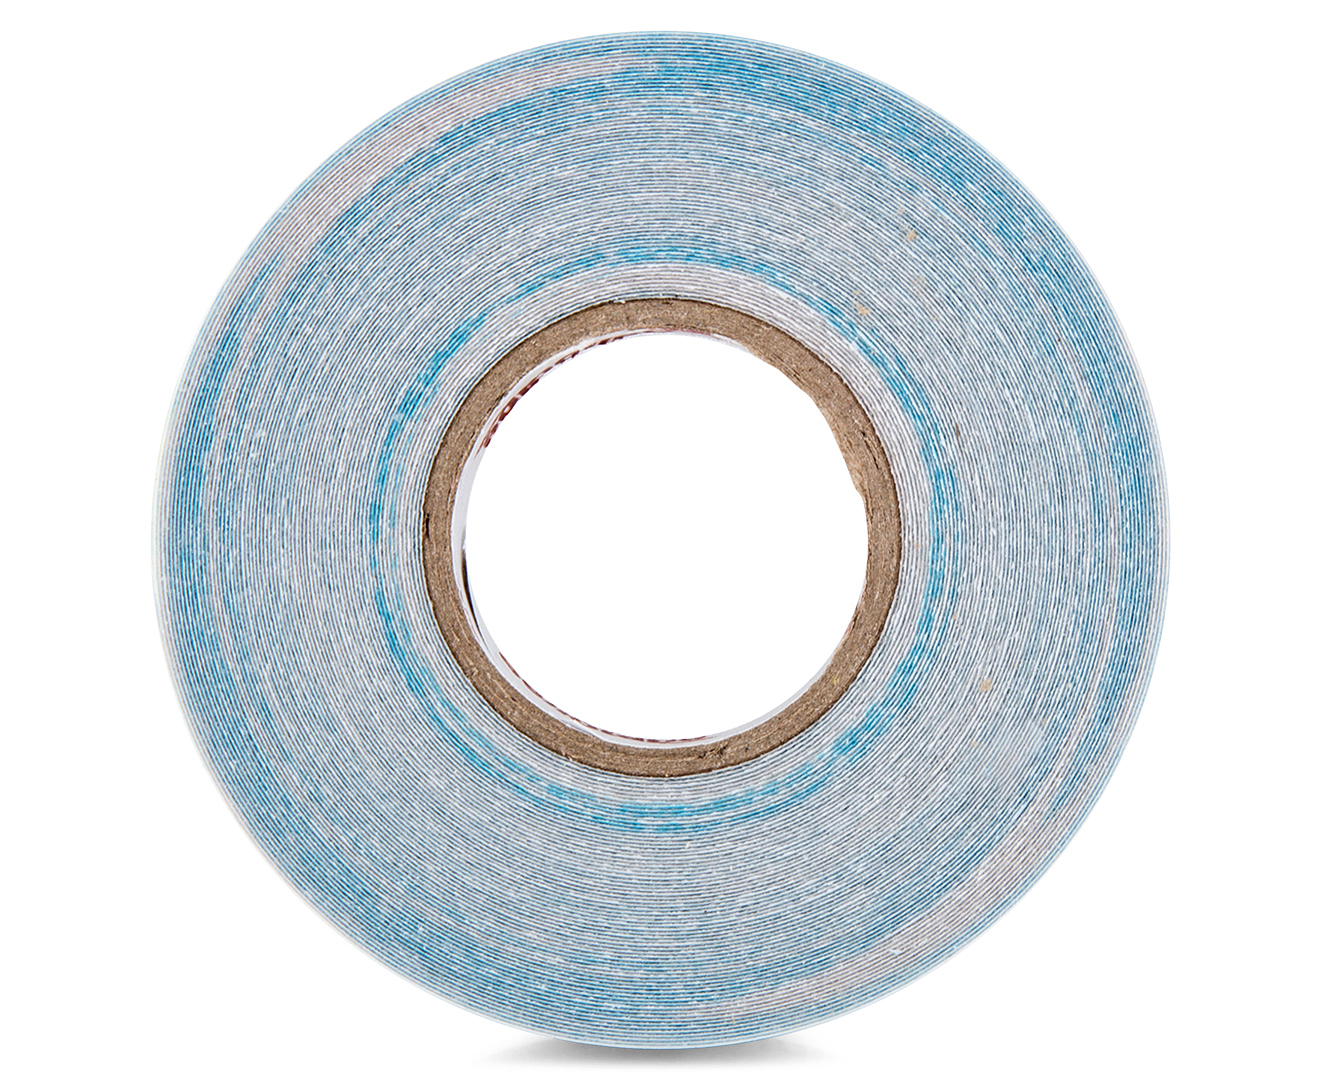 2 X Sellotape 12mmx10m Double Sided Tape Catch Com Au